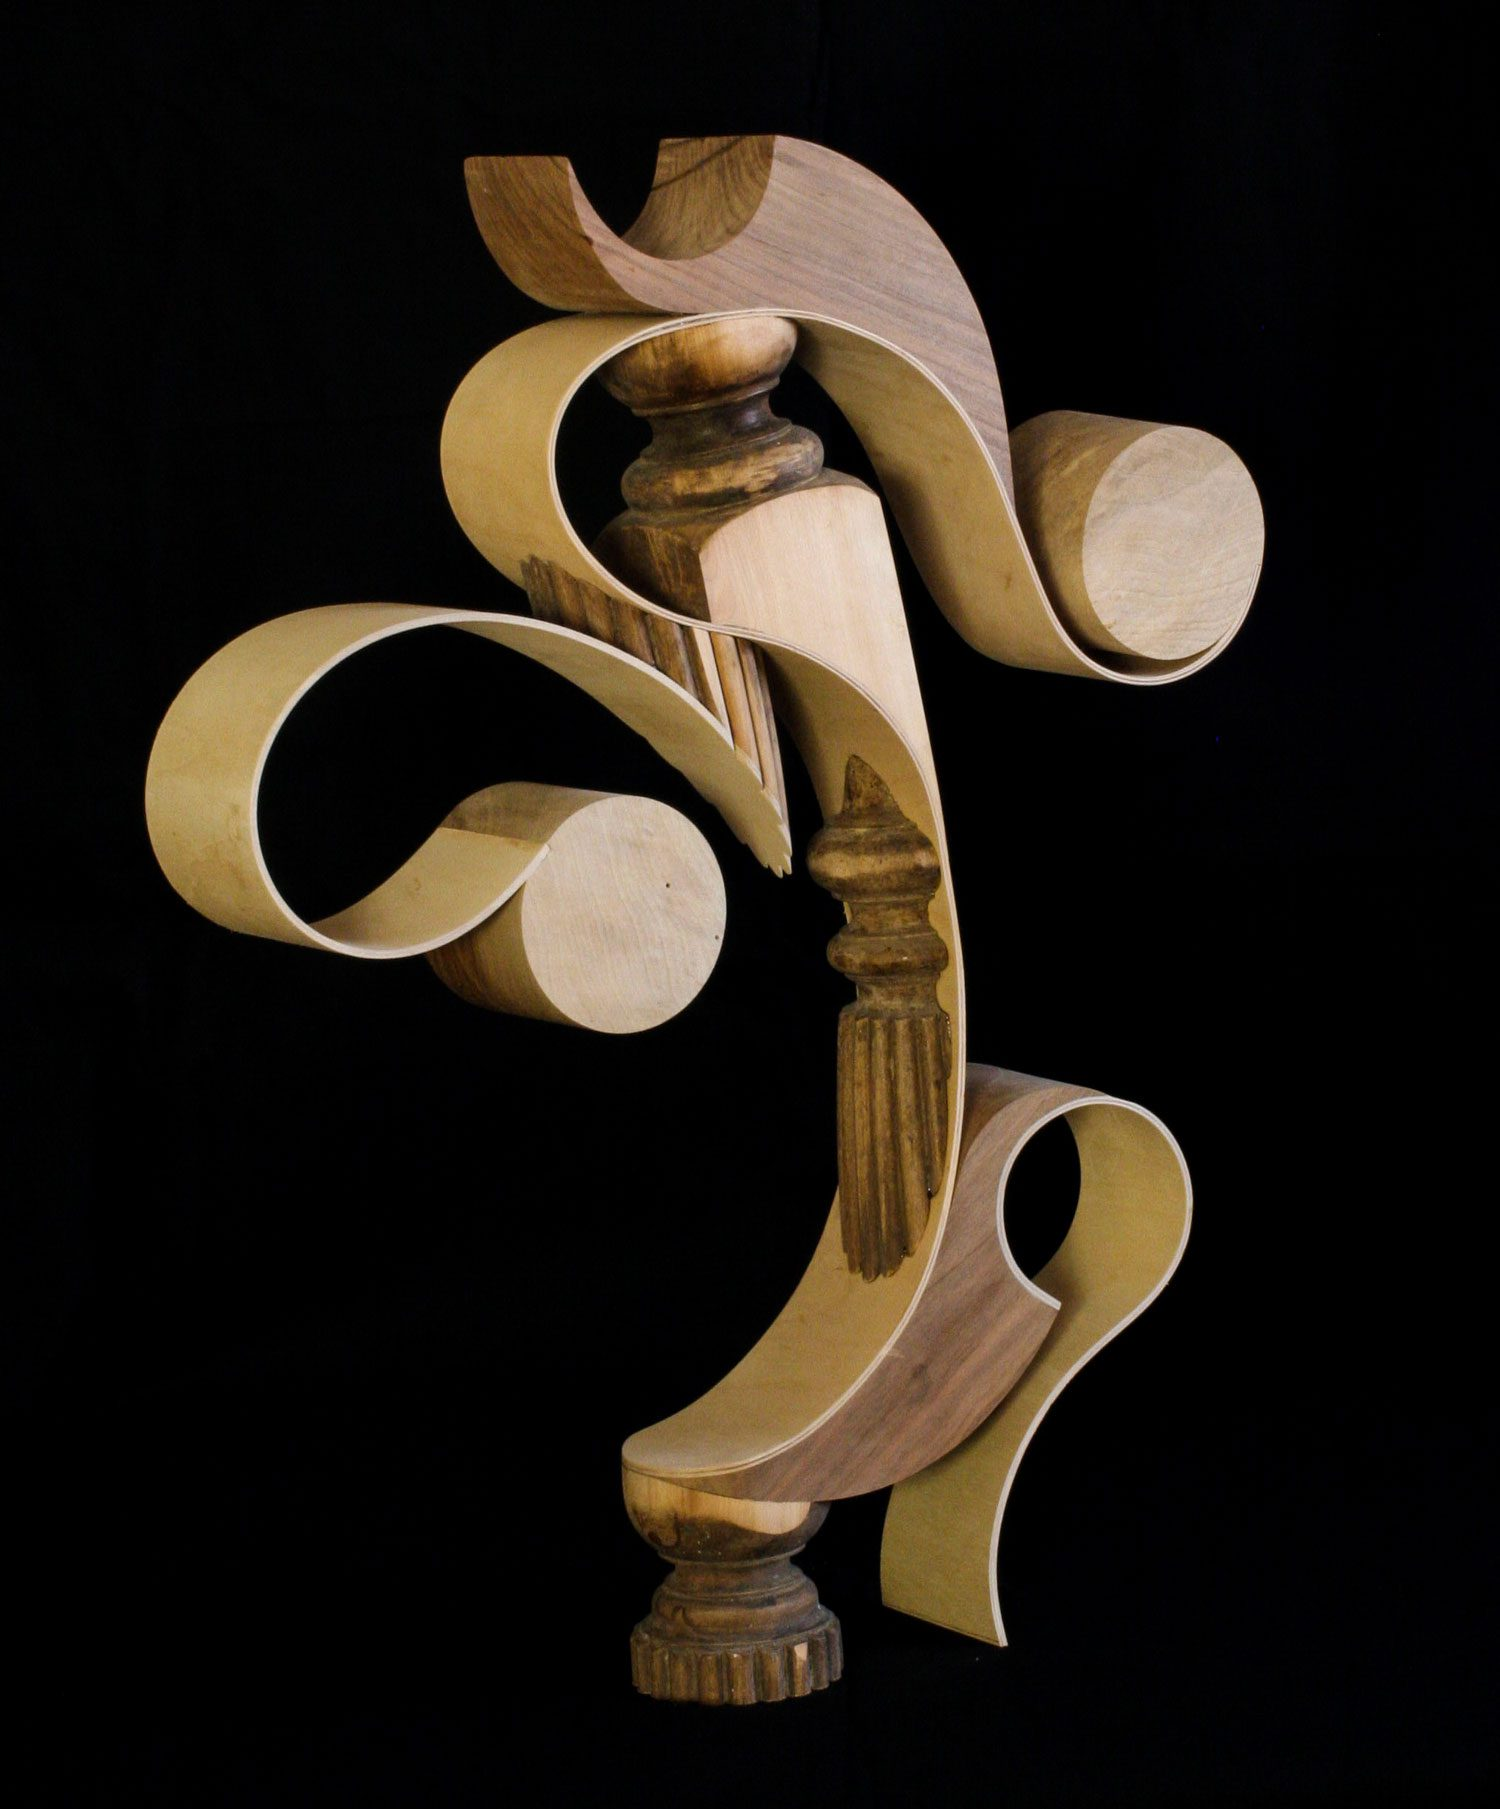 sketch of 'You' - wood and plywood